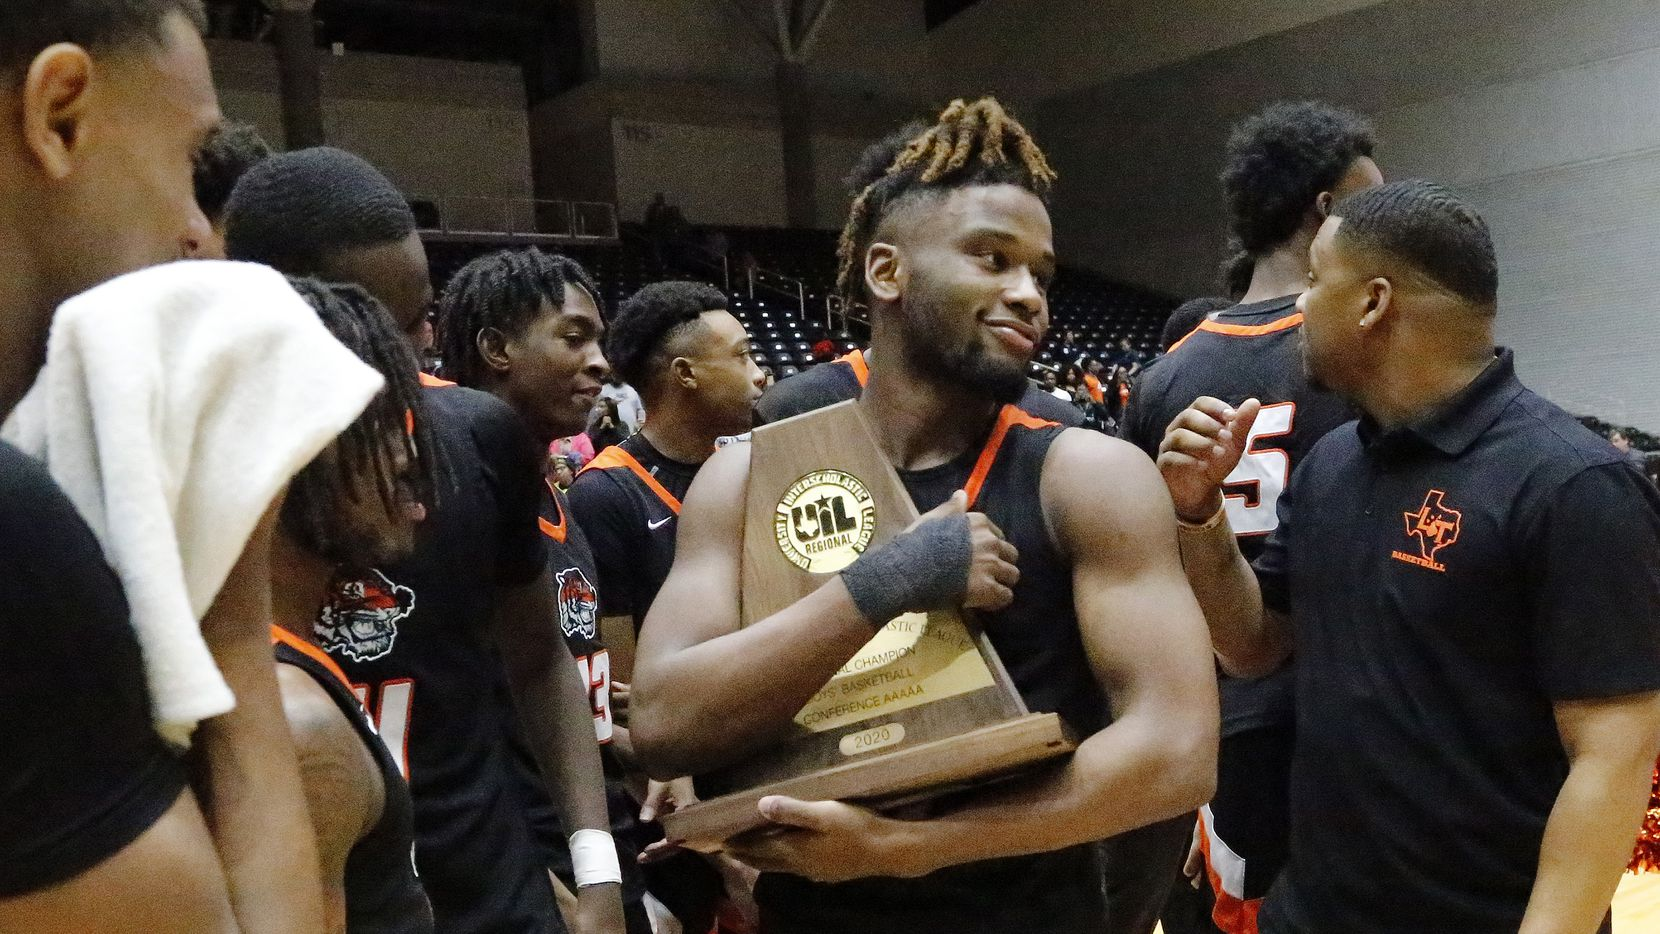 Lancaster High School guard Mike Miles (1) checks out the trophy after the win as Kimball High School played Lancaster High School for the Class 5A Region II championship at the Curtis Colwell Center in Garland on Saturday, March 7, 2020.